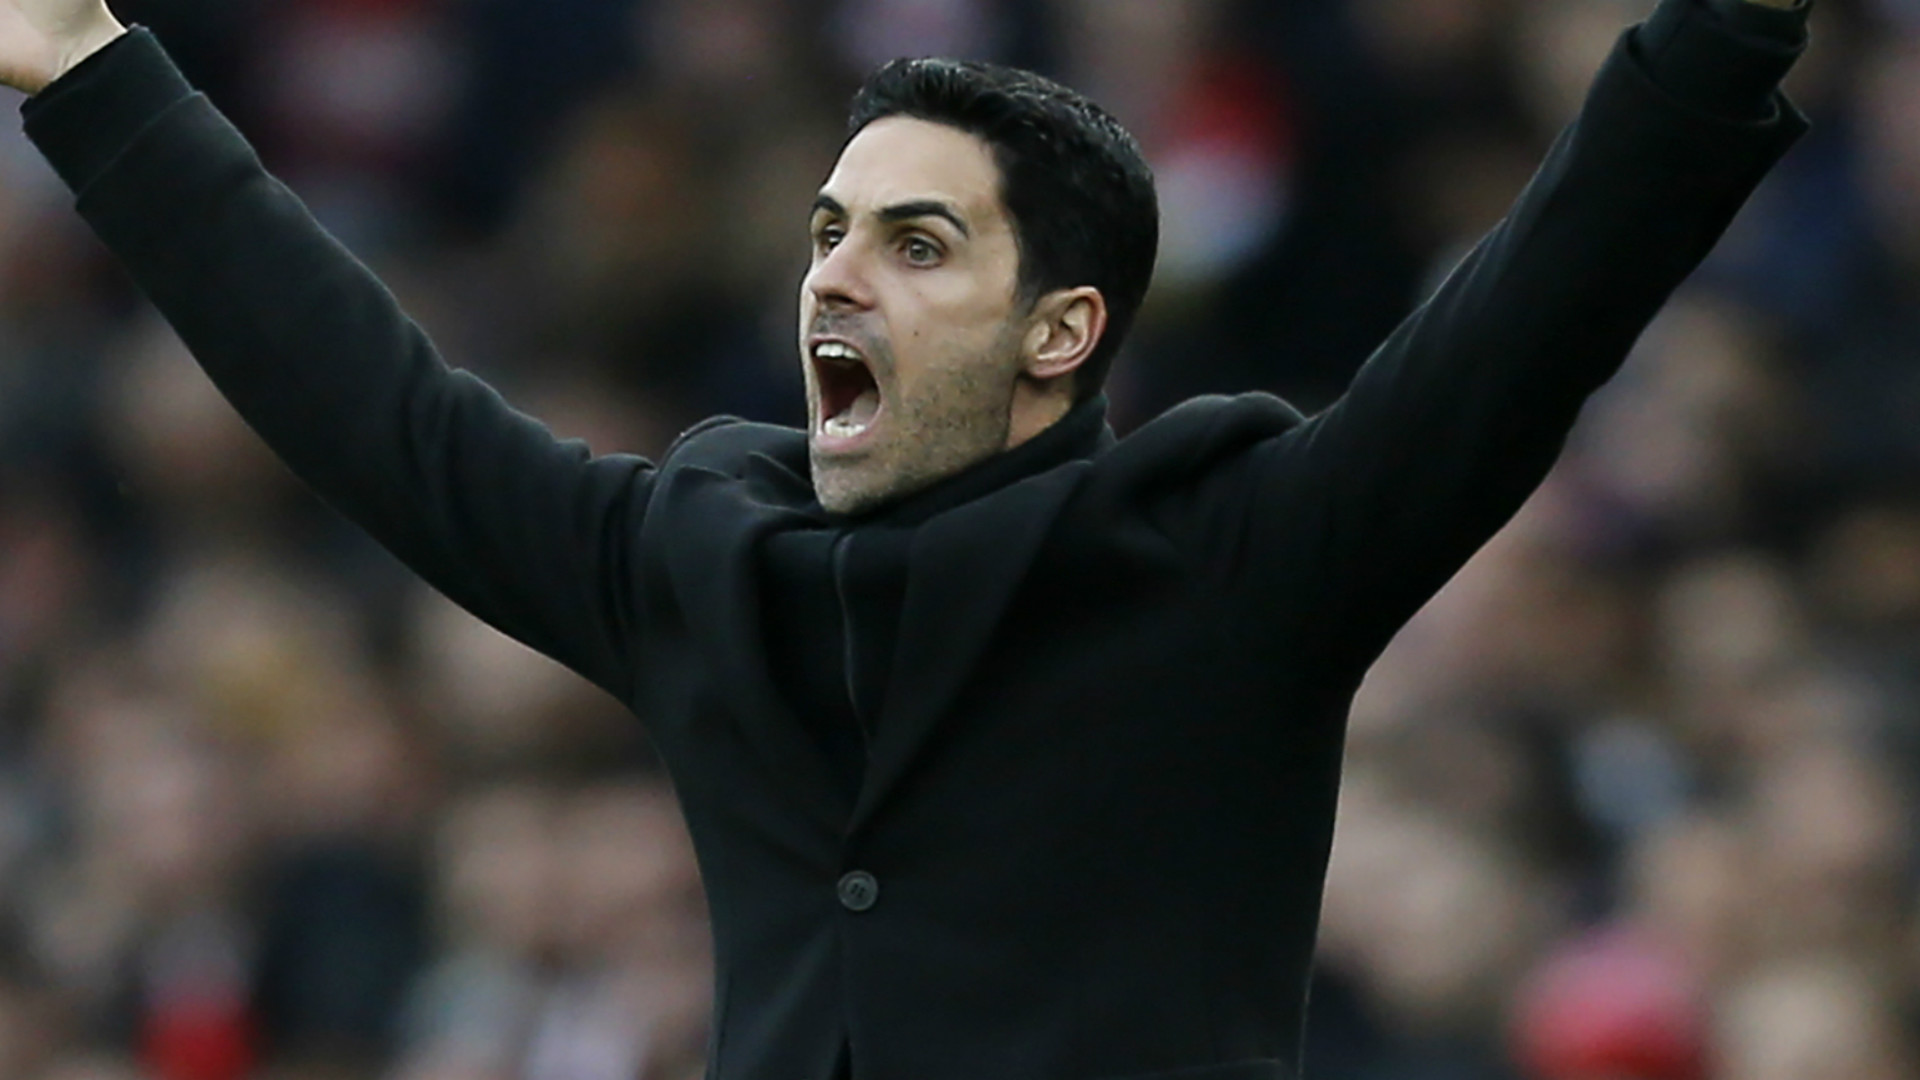 'Arteta needs £150m to spend on a new squad' - Arsenal played 'survival football' against Liverpool, says Groves